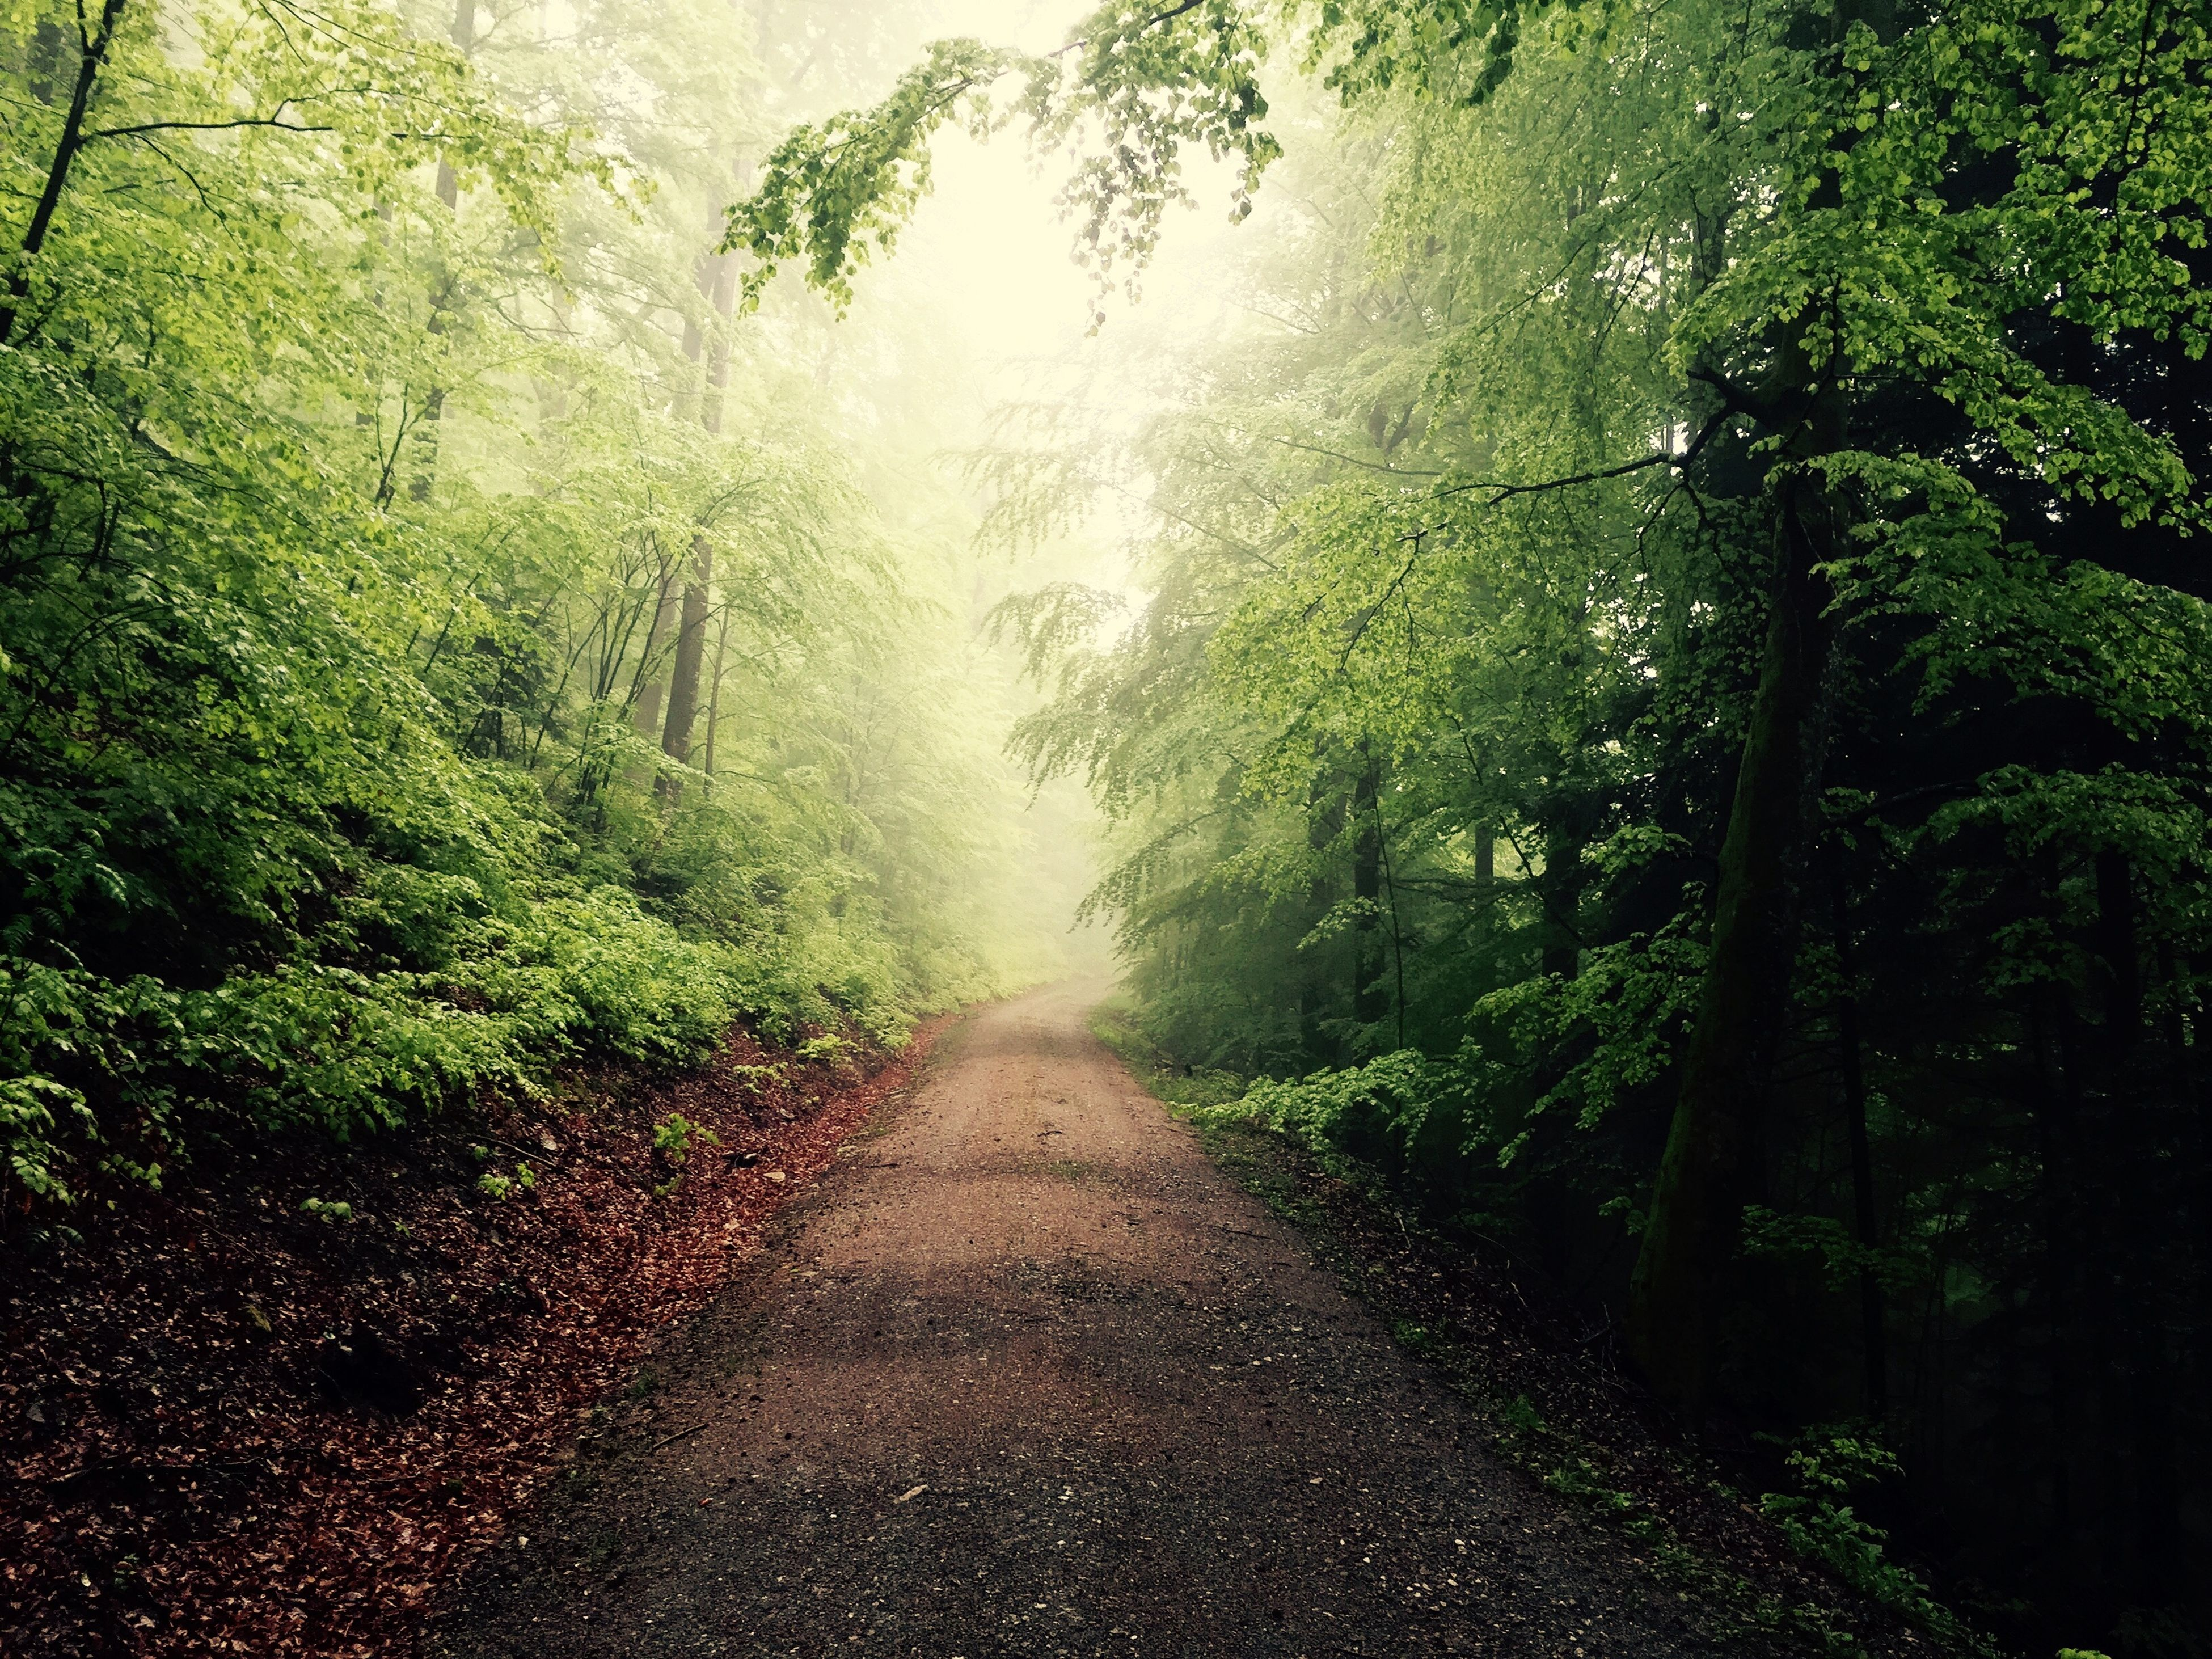 the way forward, tree, diminishing perspective, transportation, vanishing point, road, growth, tranquility, forest, nature, empty road, green color, country road, tranquil scene, fog, day, dirt road, beauty in nature, outdoors, no people